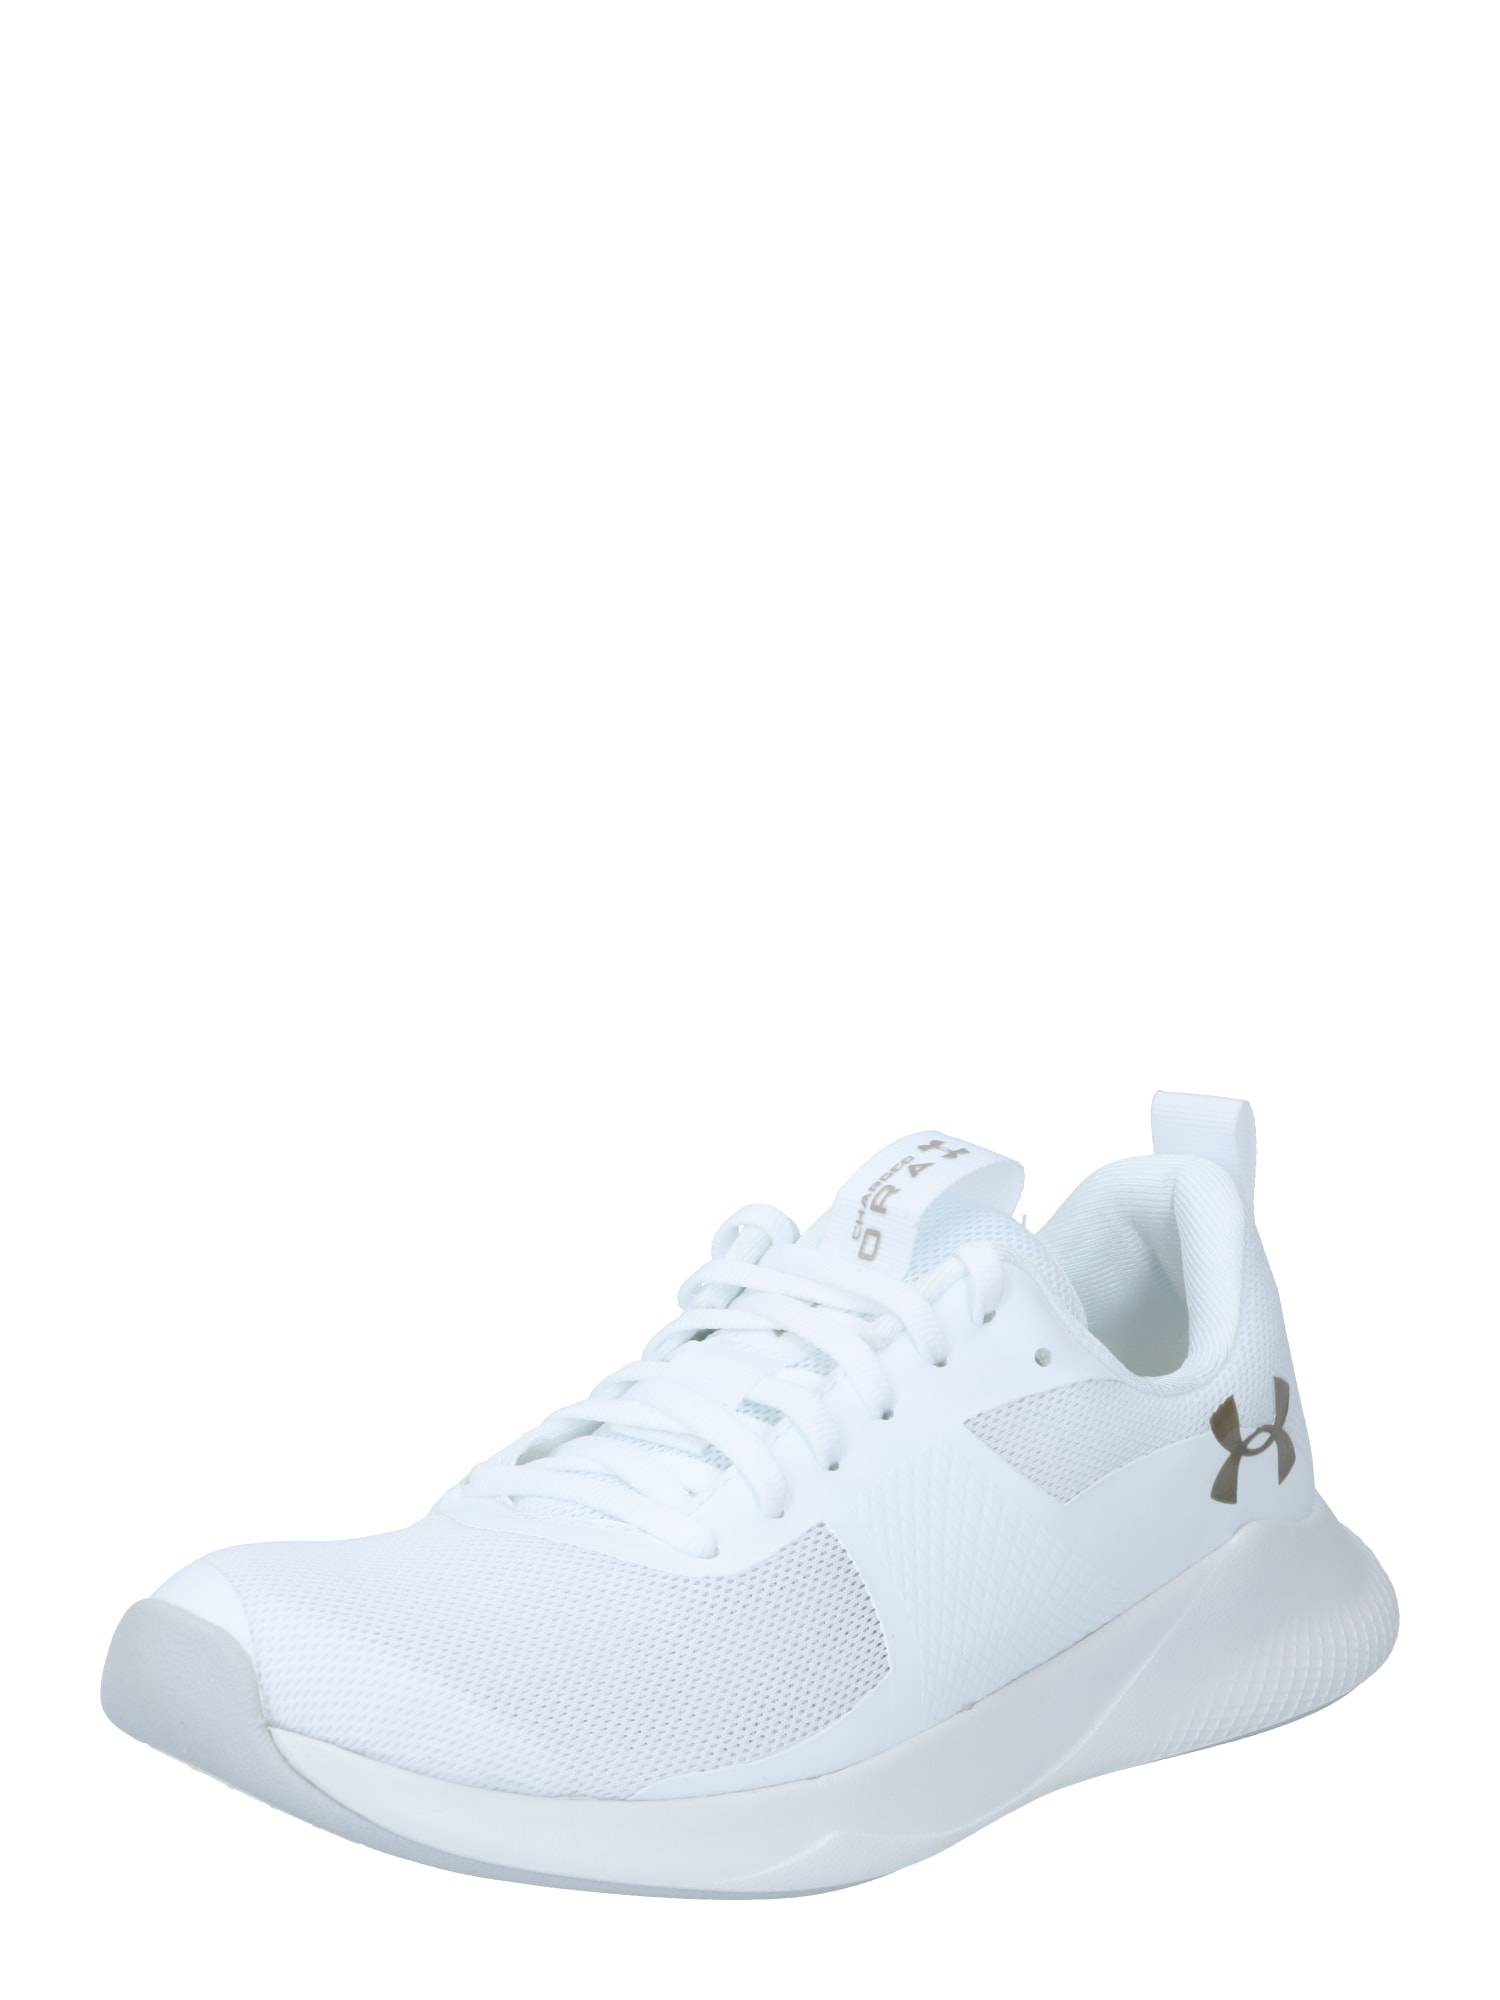 UNDER ARMOUR Chaussure de sport 'UA W Charged Aurora'  - Blanc - Taille: 9.5 - female